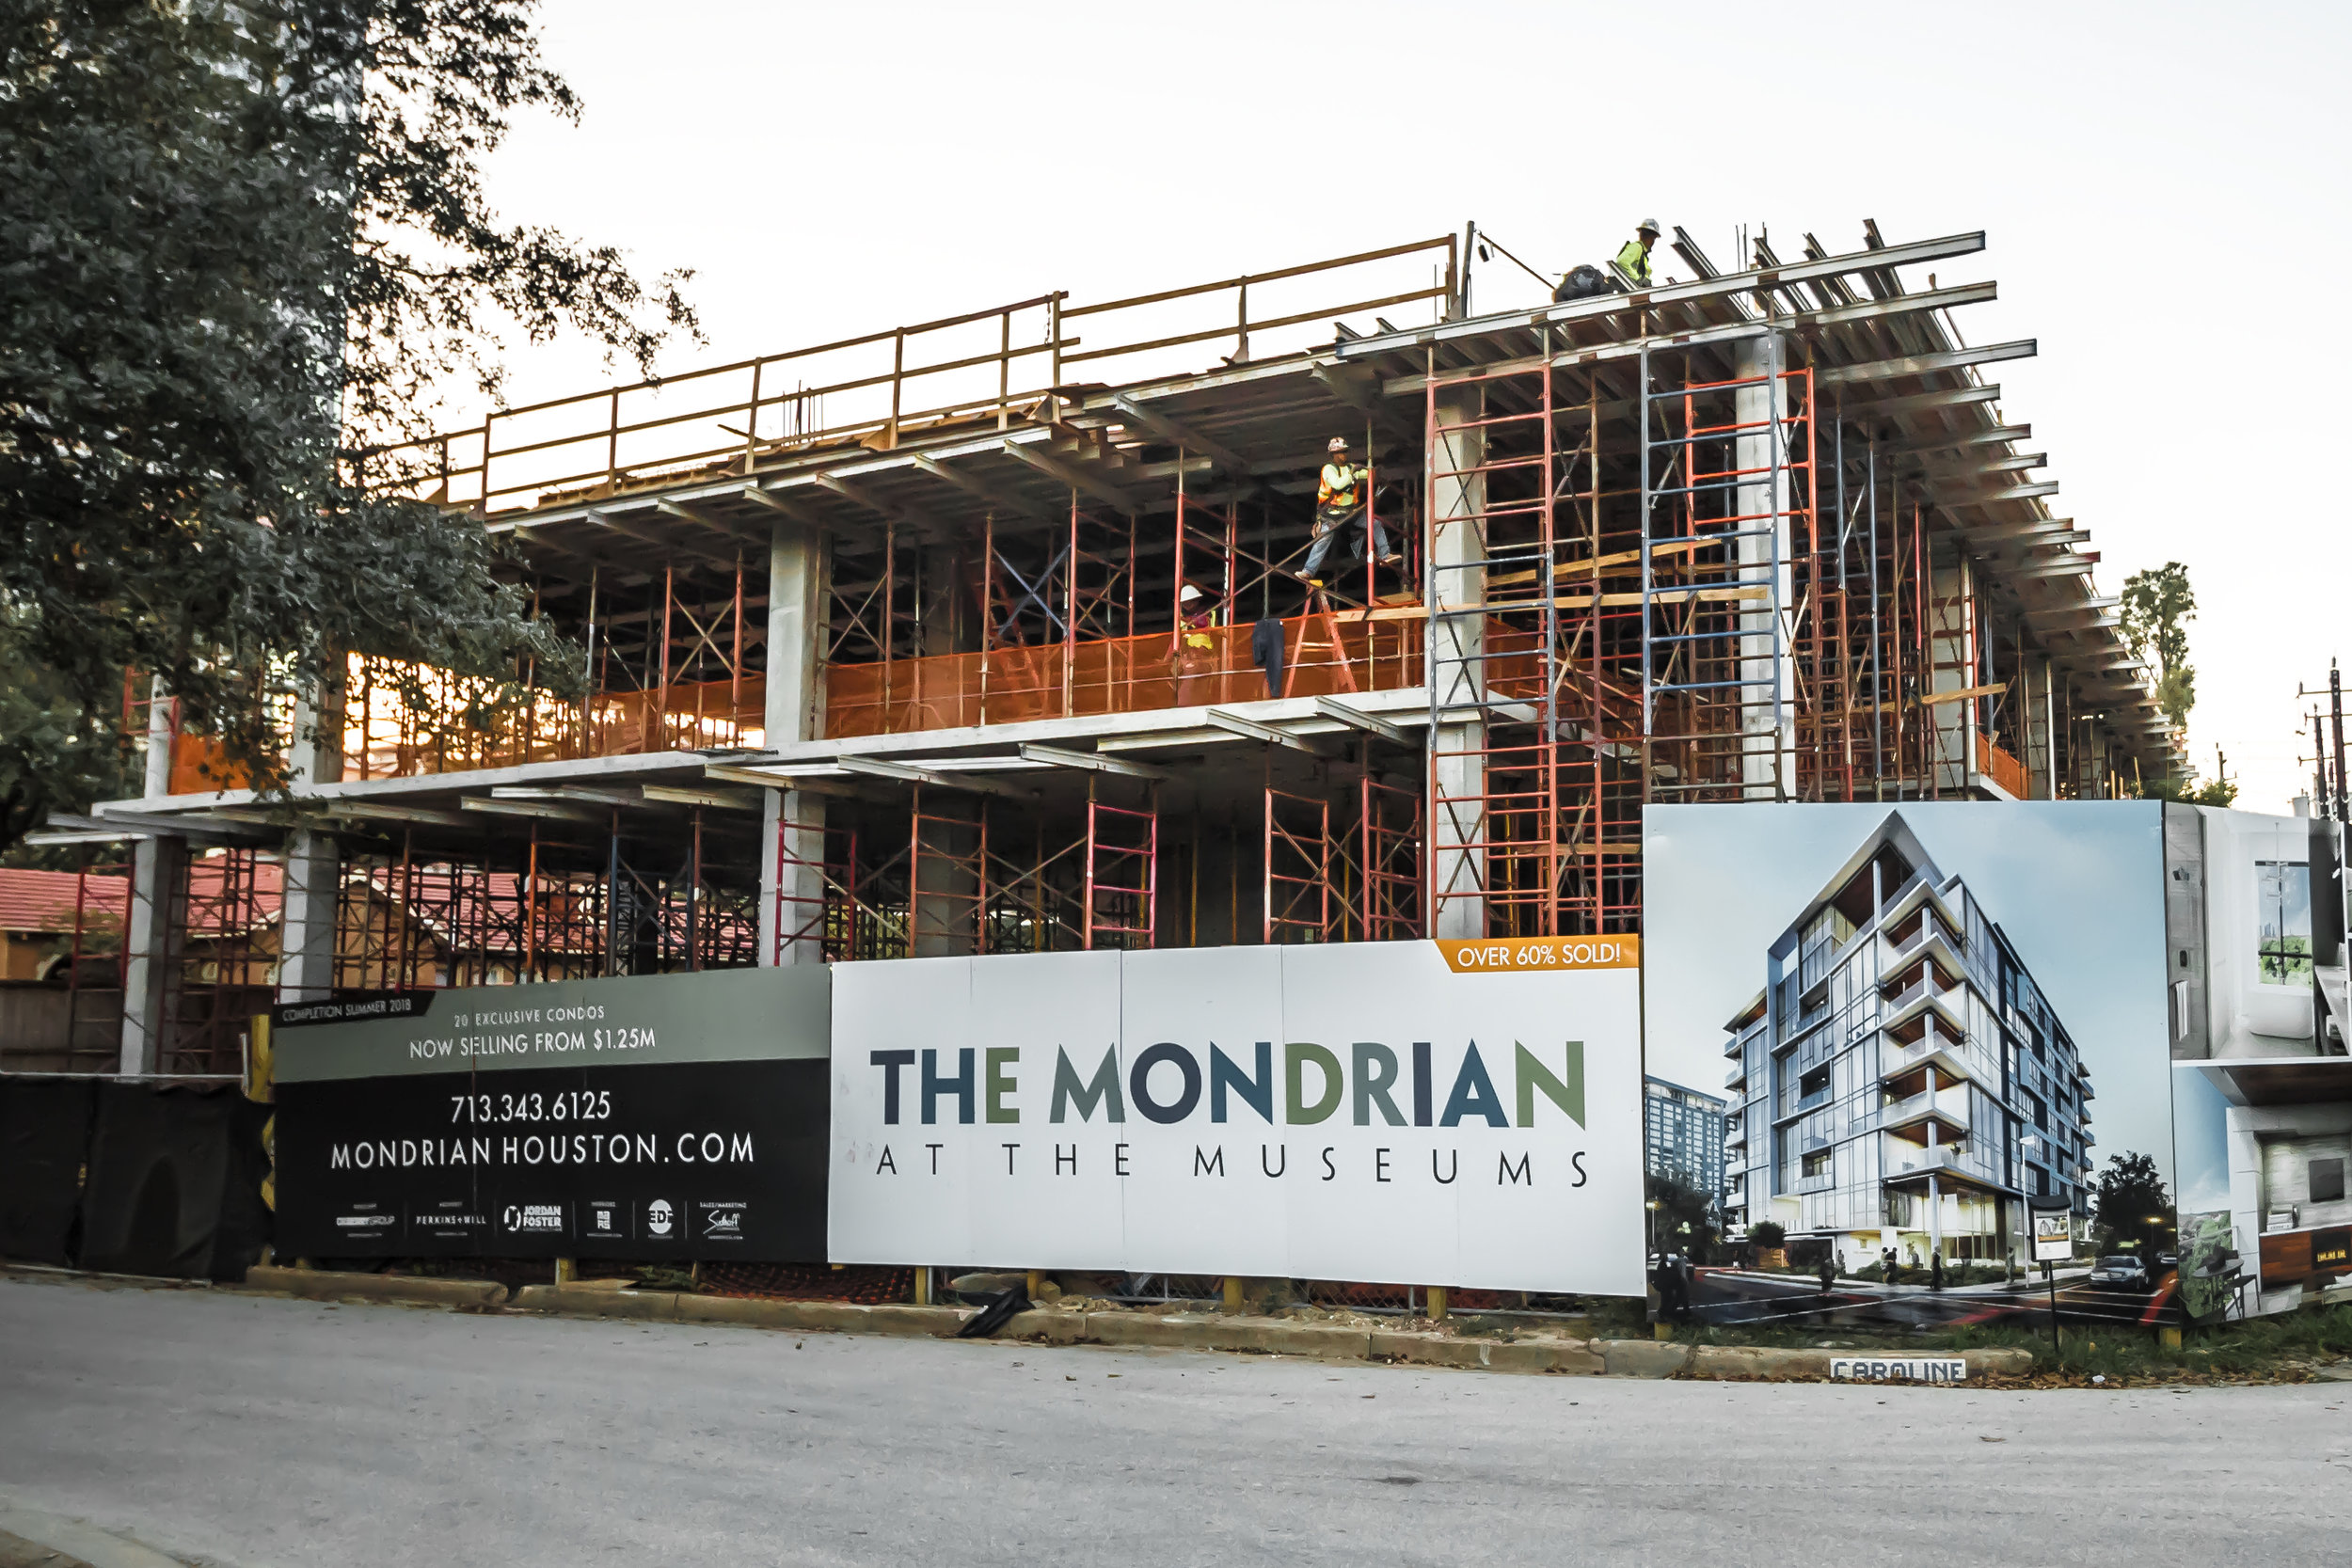 Mondrian_Construction-Nov2017-6.jpg